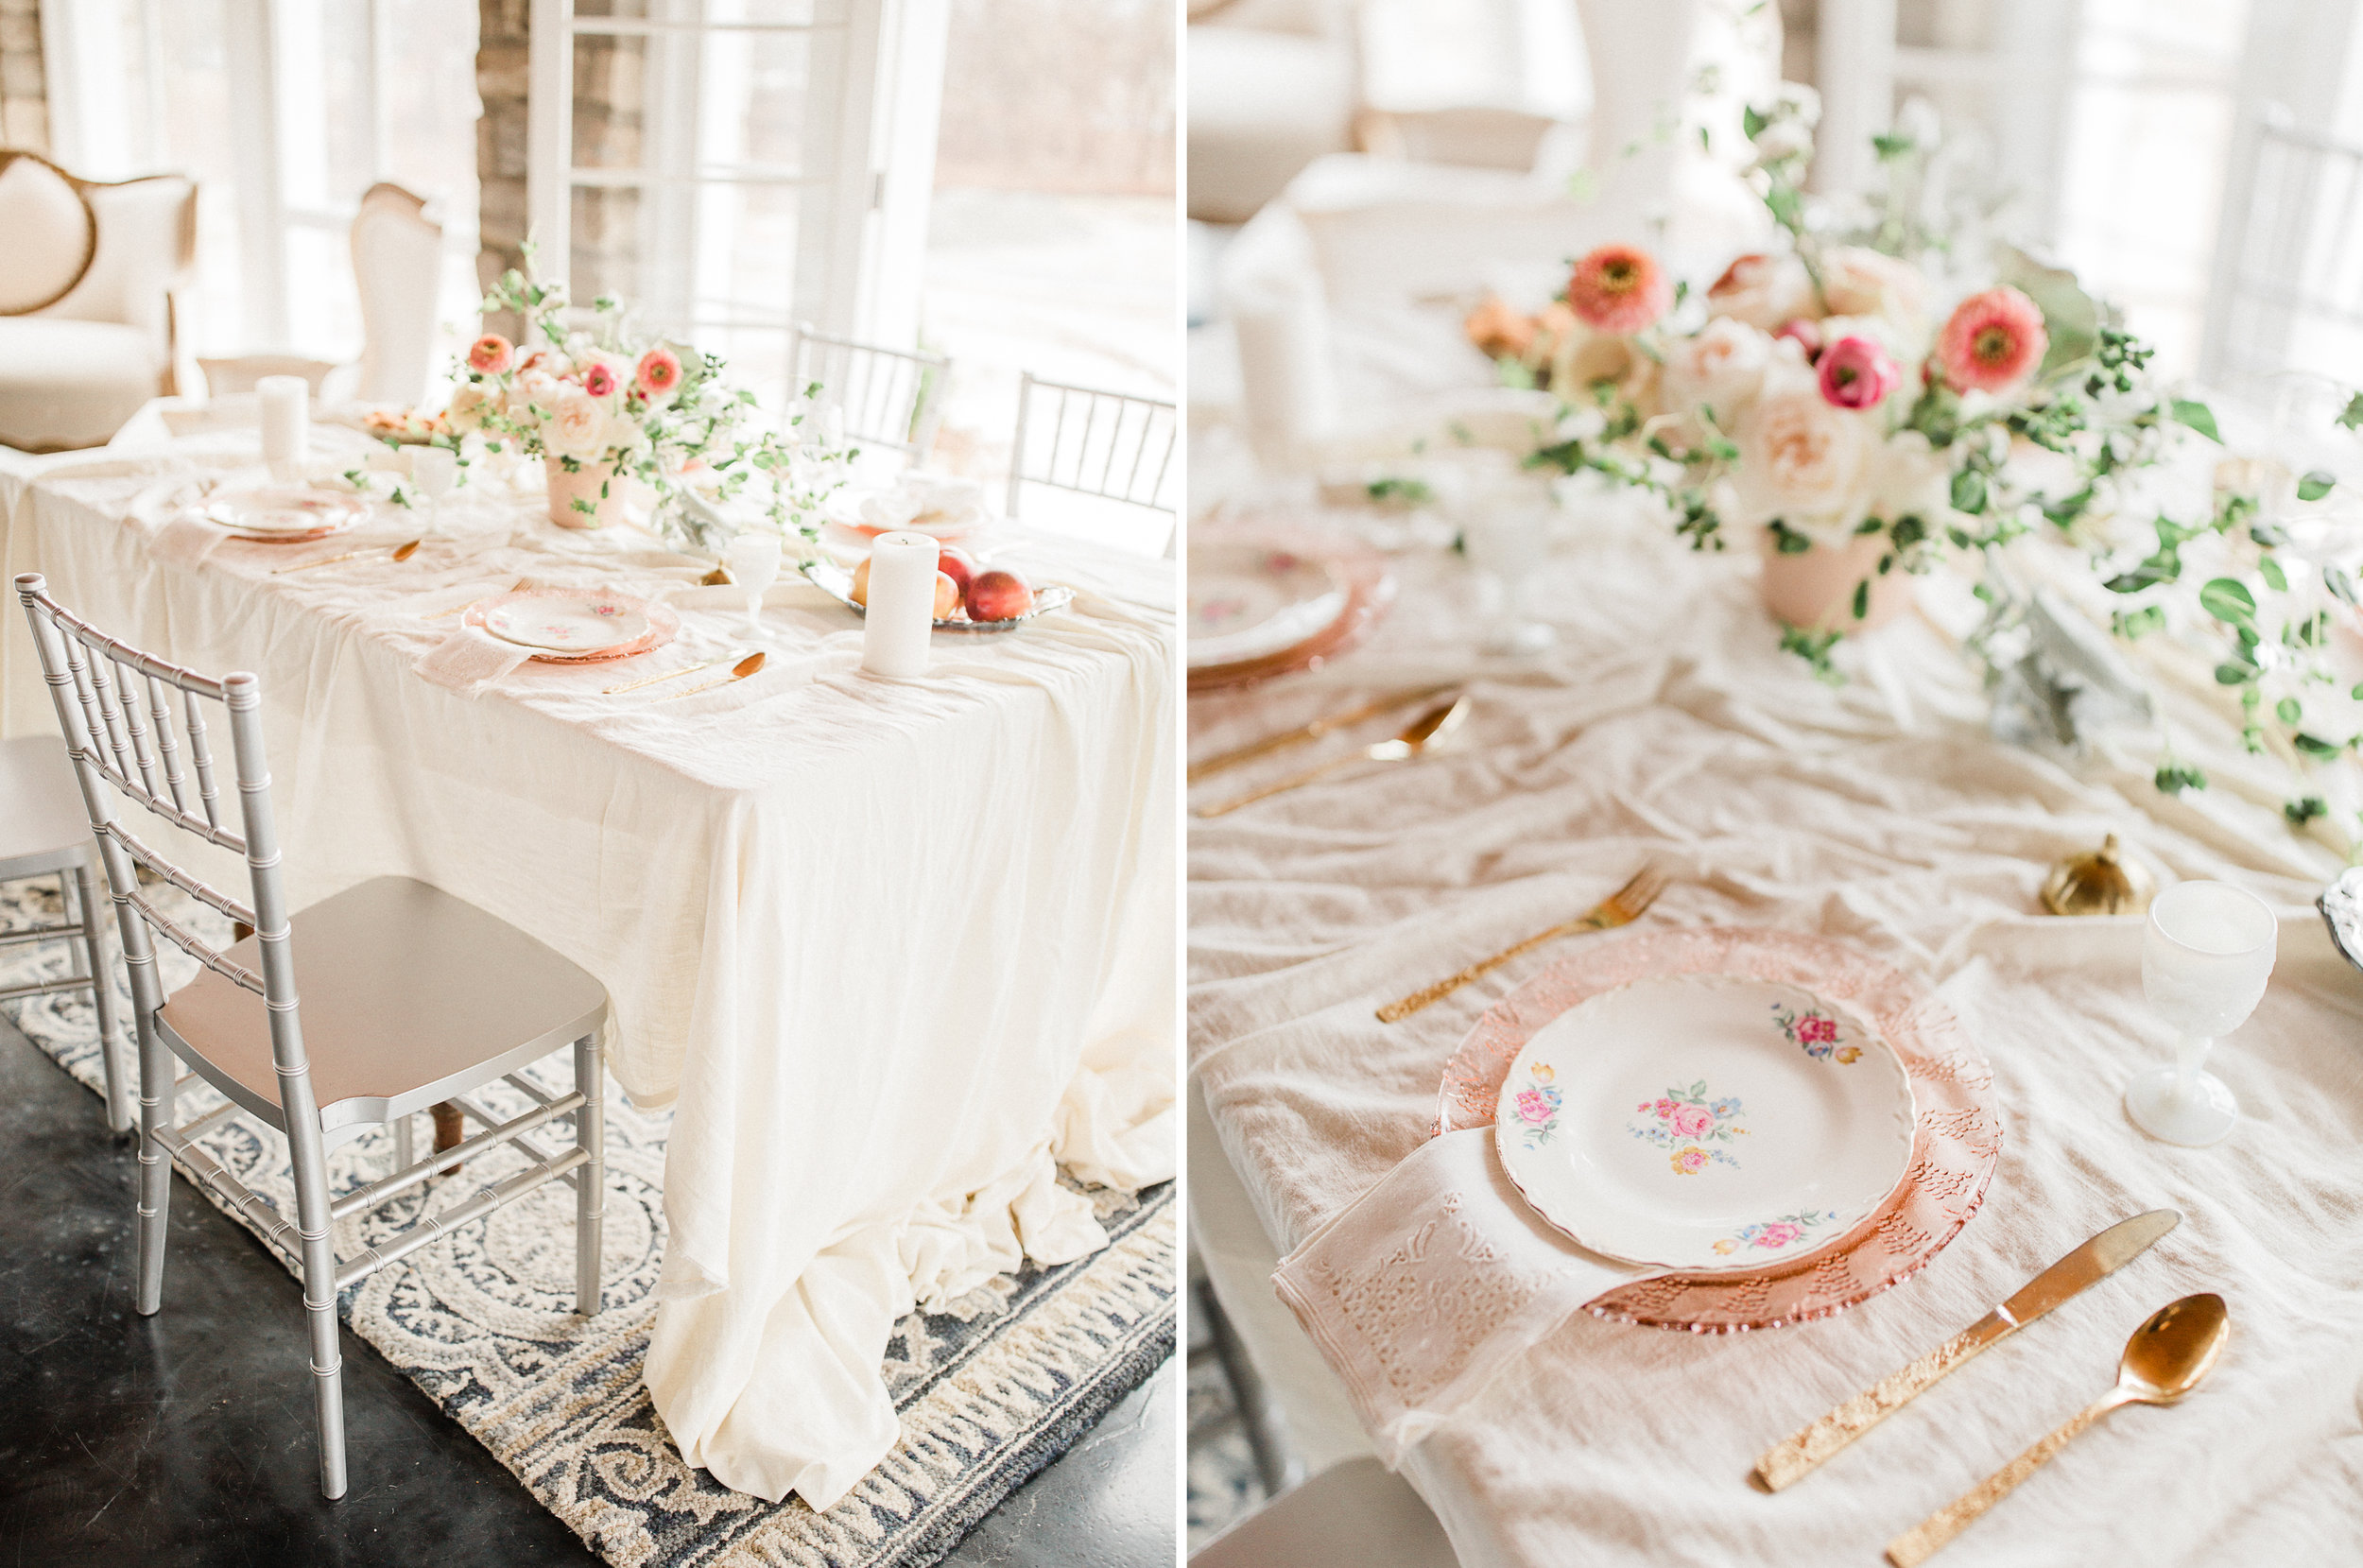 dorothy_louise_photography_old_stone_house_st._charles_bridal_inspiration10.jpg